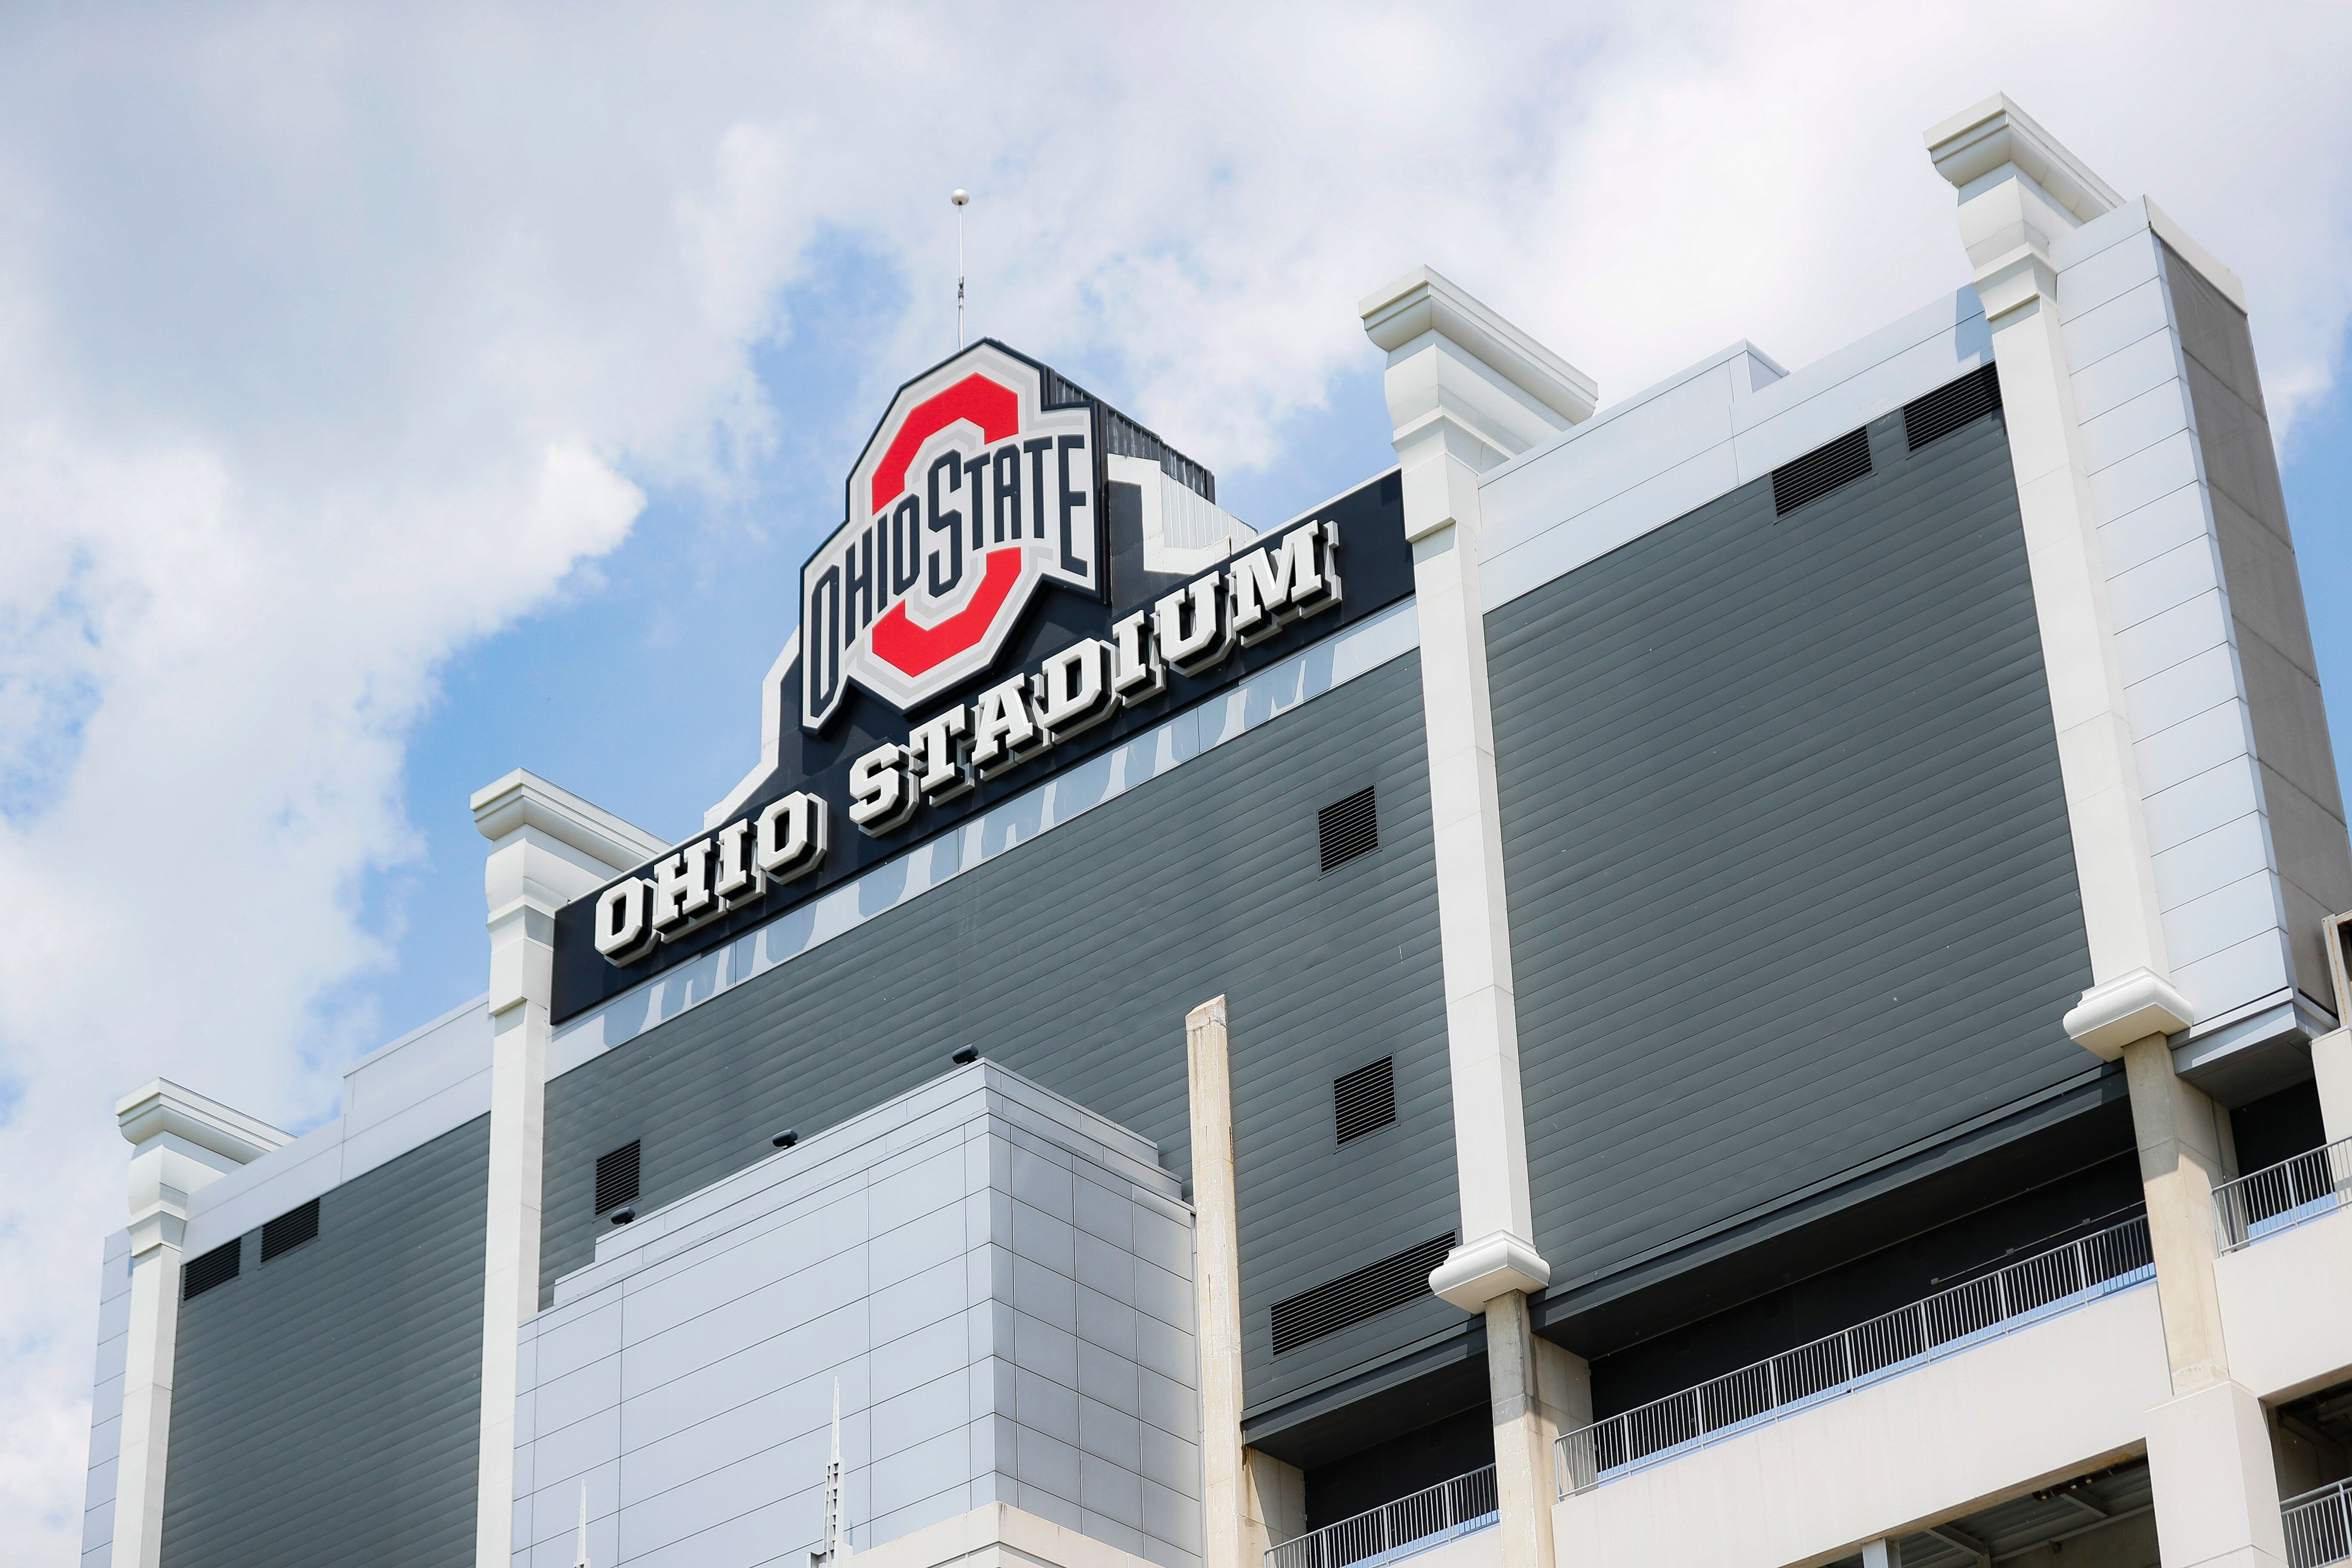 Clouds pass above The Ohio State University's football stadium, Saturday, May 18, 2019, in Columbus, Ohio. Dr. Richard Strauss, a now-dead Ohio State team doctor sexually abused at least 177 male students from the 1970s through the 1990s, and numerous university officials got wind of what was going on over the years but did little or nothing to stop him, according to a report released by the school Friday. (AP Photo/John Minchillo)